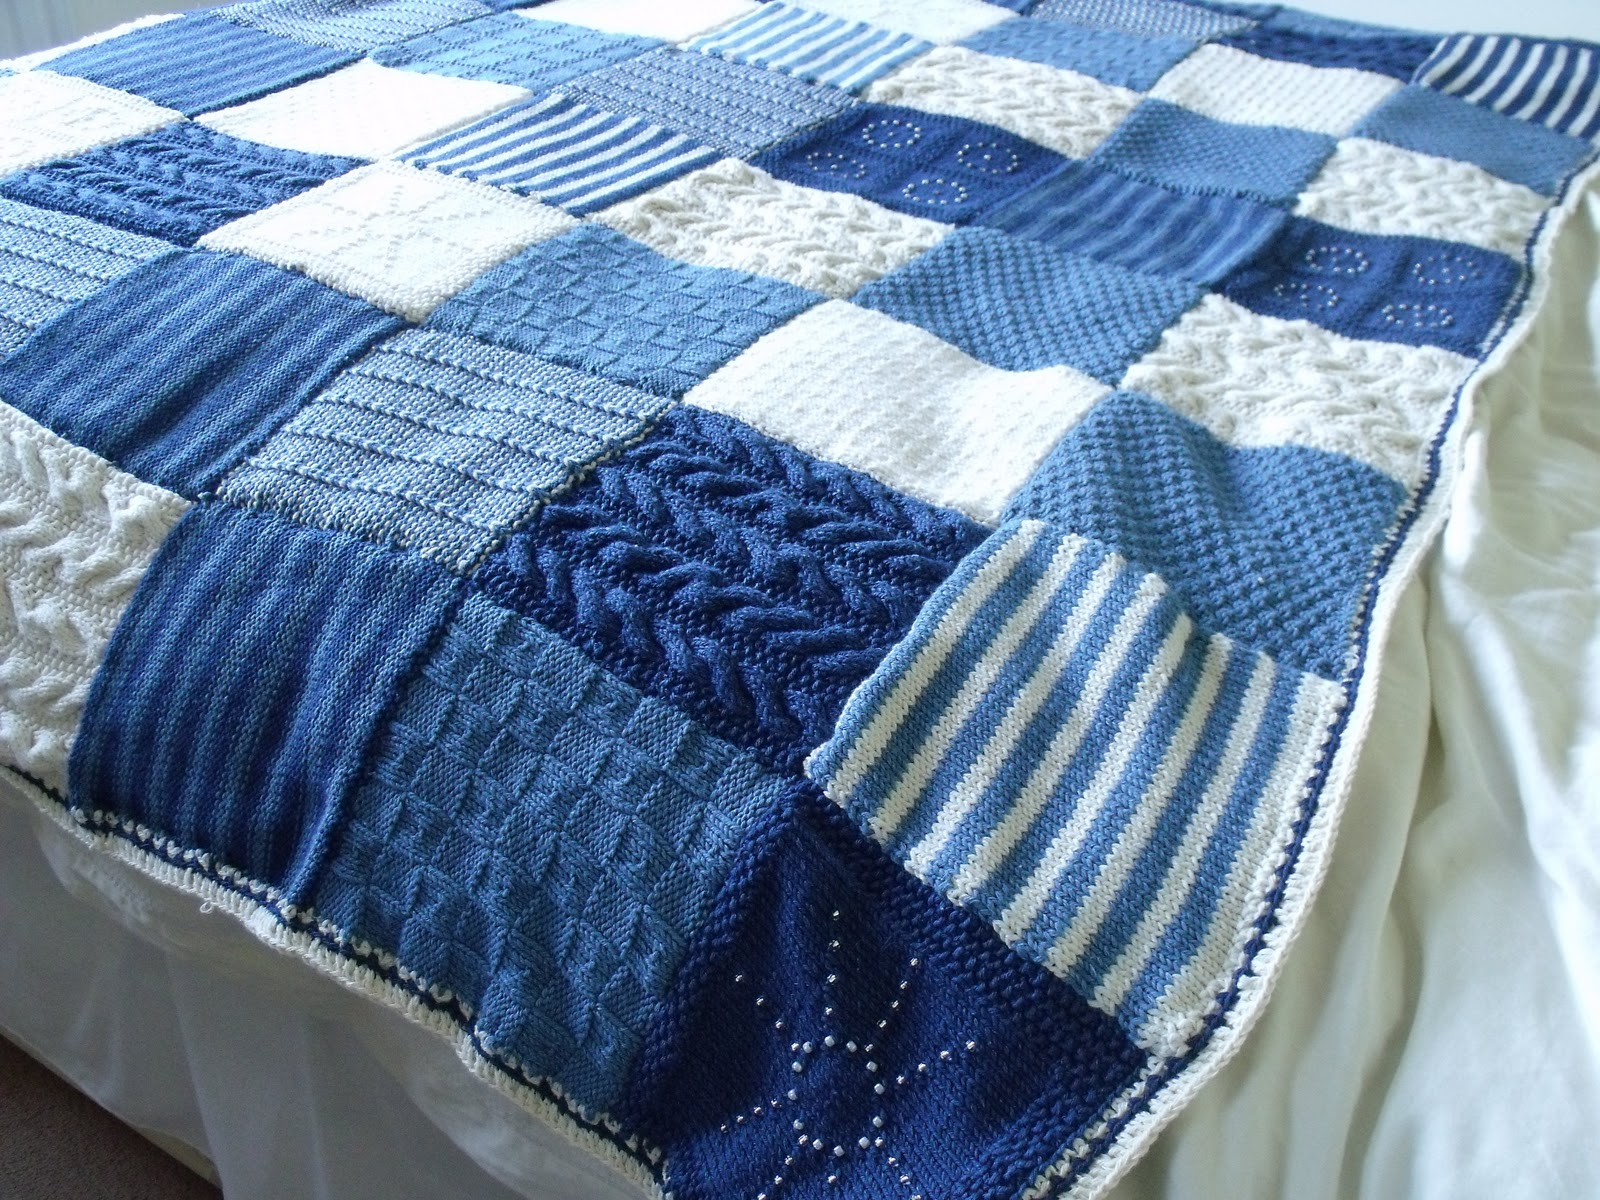 Knitted Blankets And Throws Patterns : Knit It, Grow It, Cook It: Knitted blanket finished.